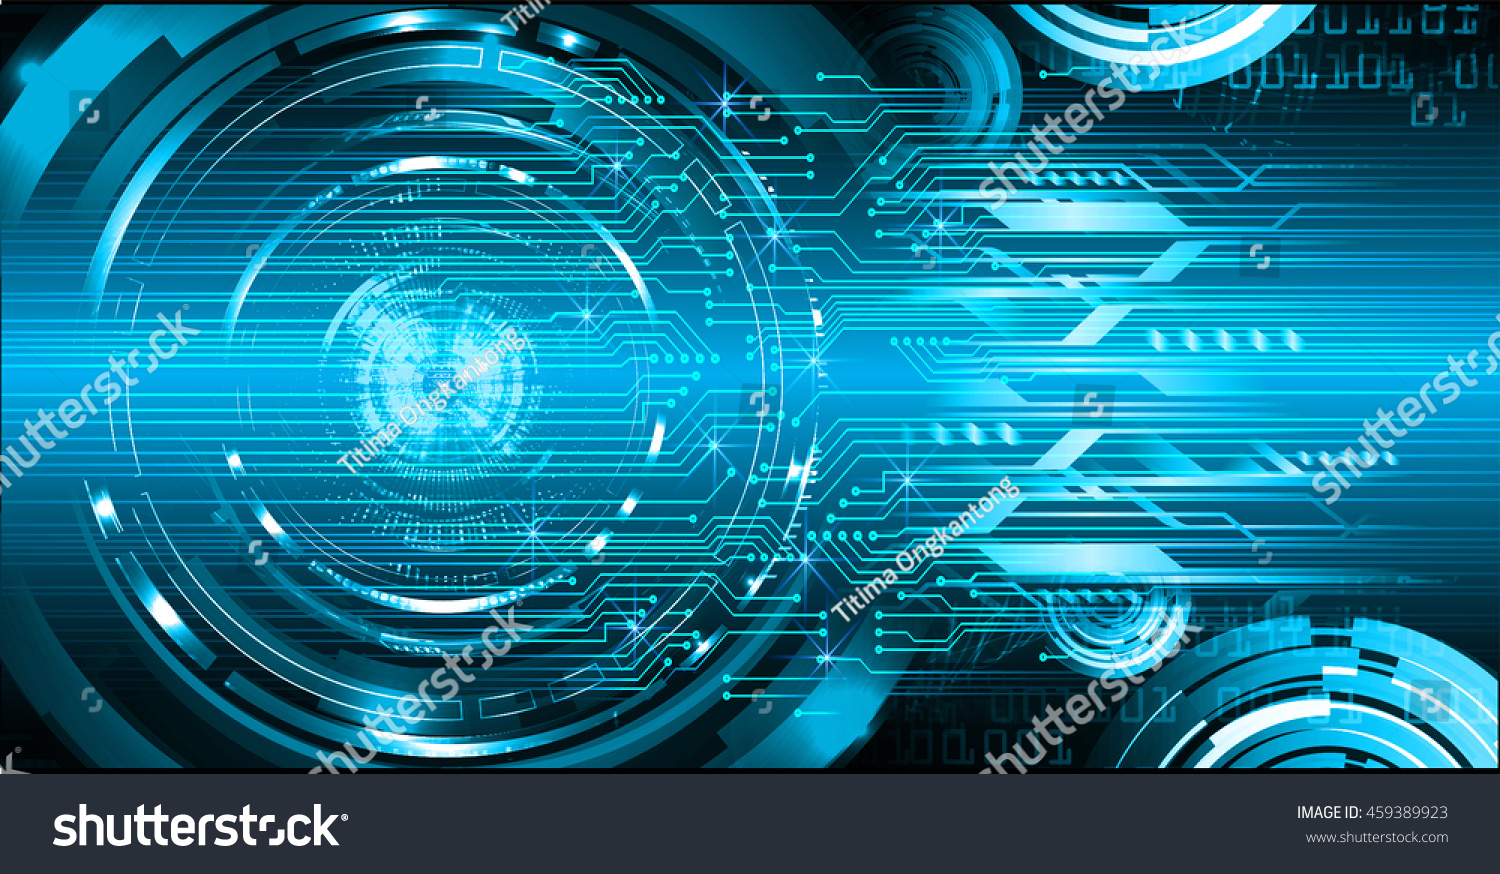 Binary Circuit Board Future Technology Blue Eye Cyber Security Code On Concept Background Abstract Hi Speed Digital Internetmotion Move Blur Pixel Vector Ez